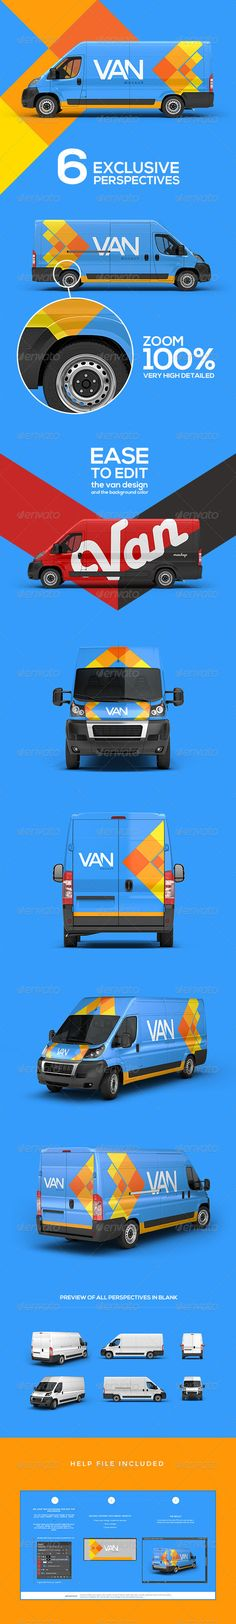 Van Mockup | #automockup #carmockup | Download: http://graphicriver.net/item/van-mockup/6992810?ref=ksioks